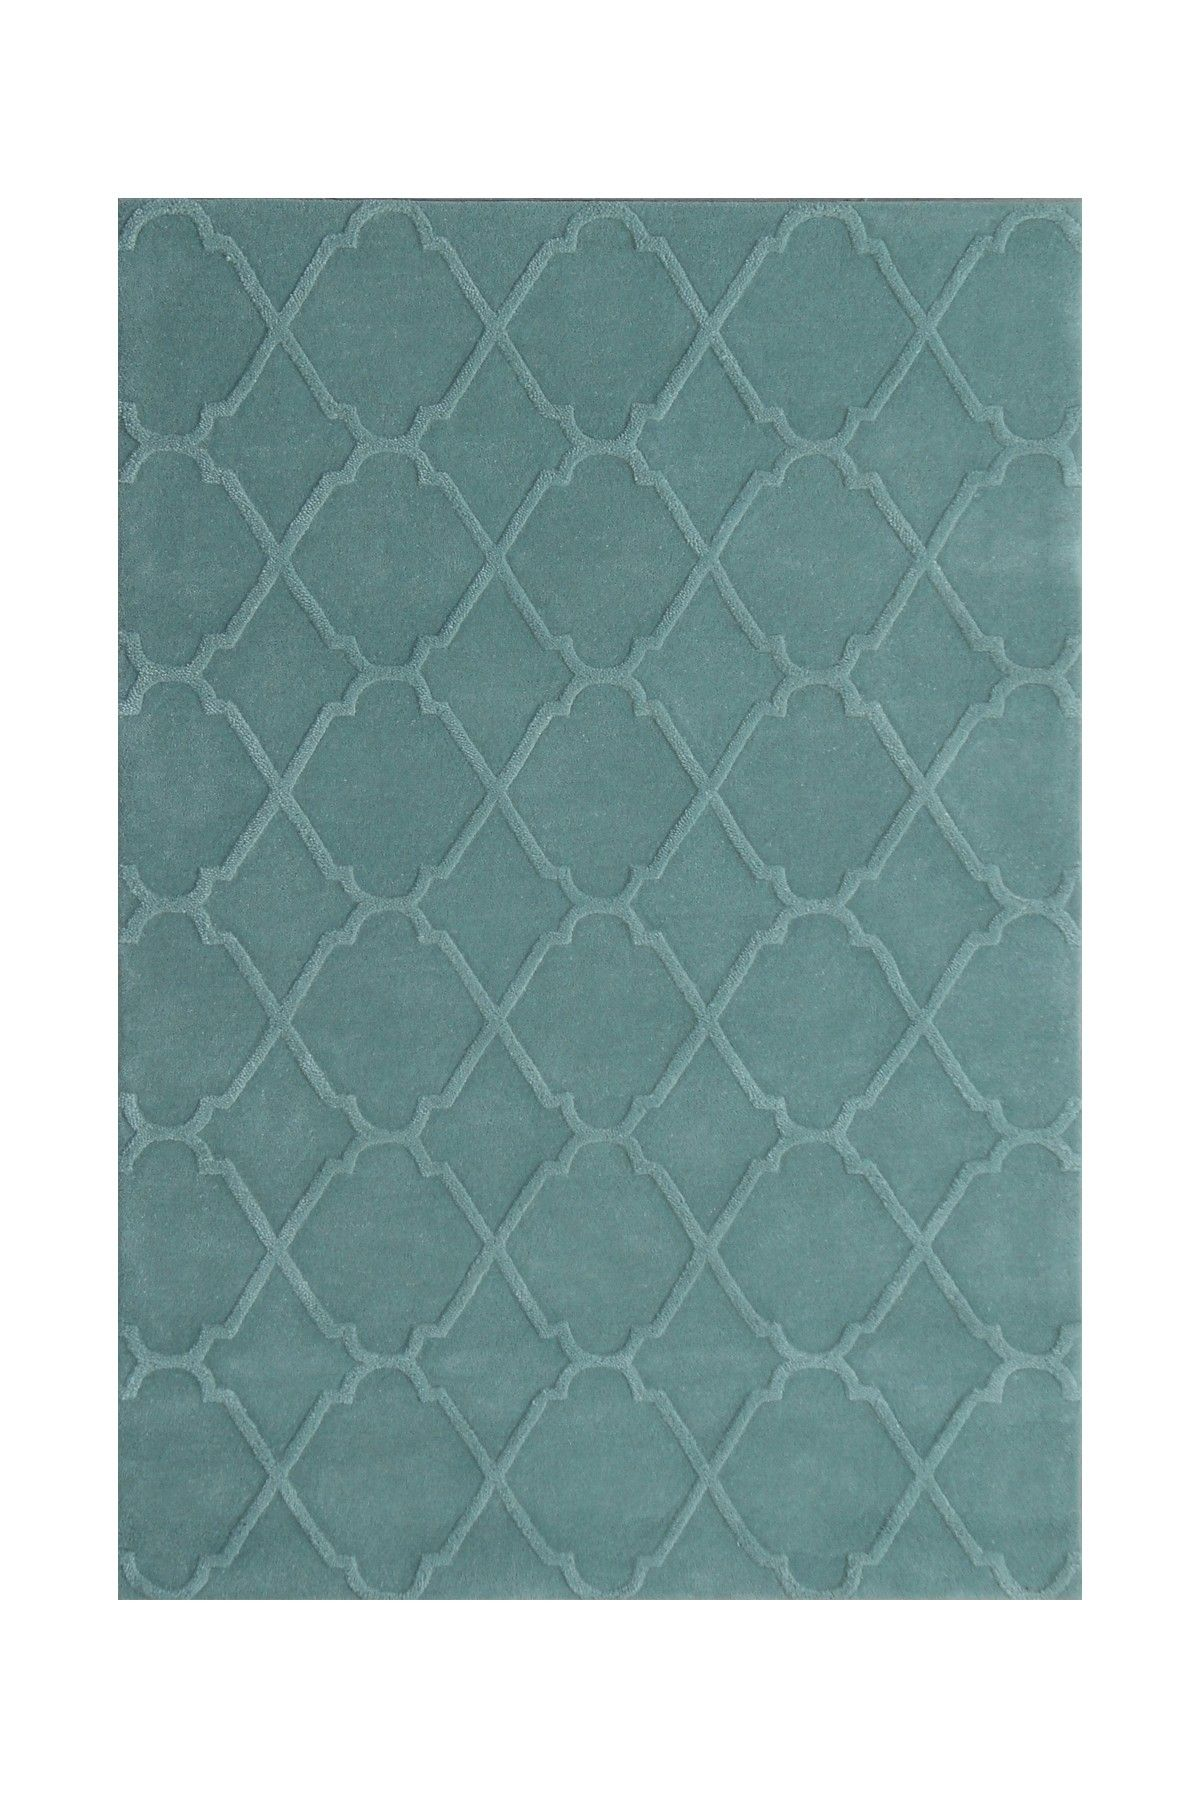 Superior Trellis Regency Rug Design By Laurie Forehand For Delos Rugs  Www.delosrugs.com